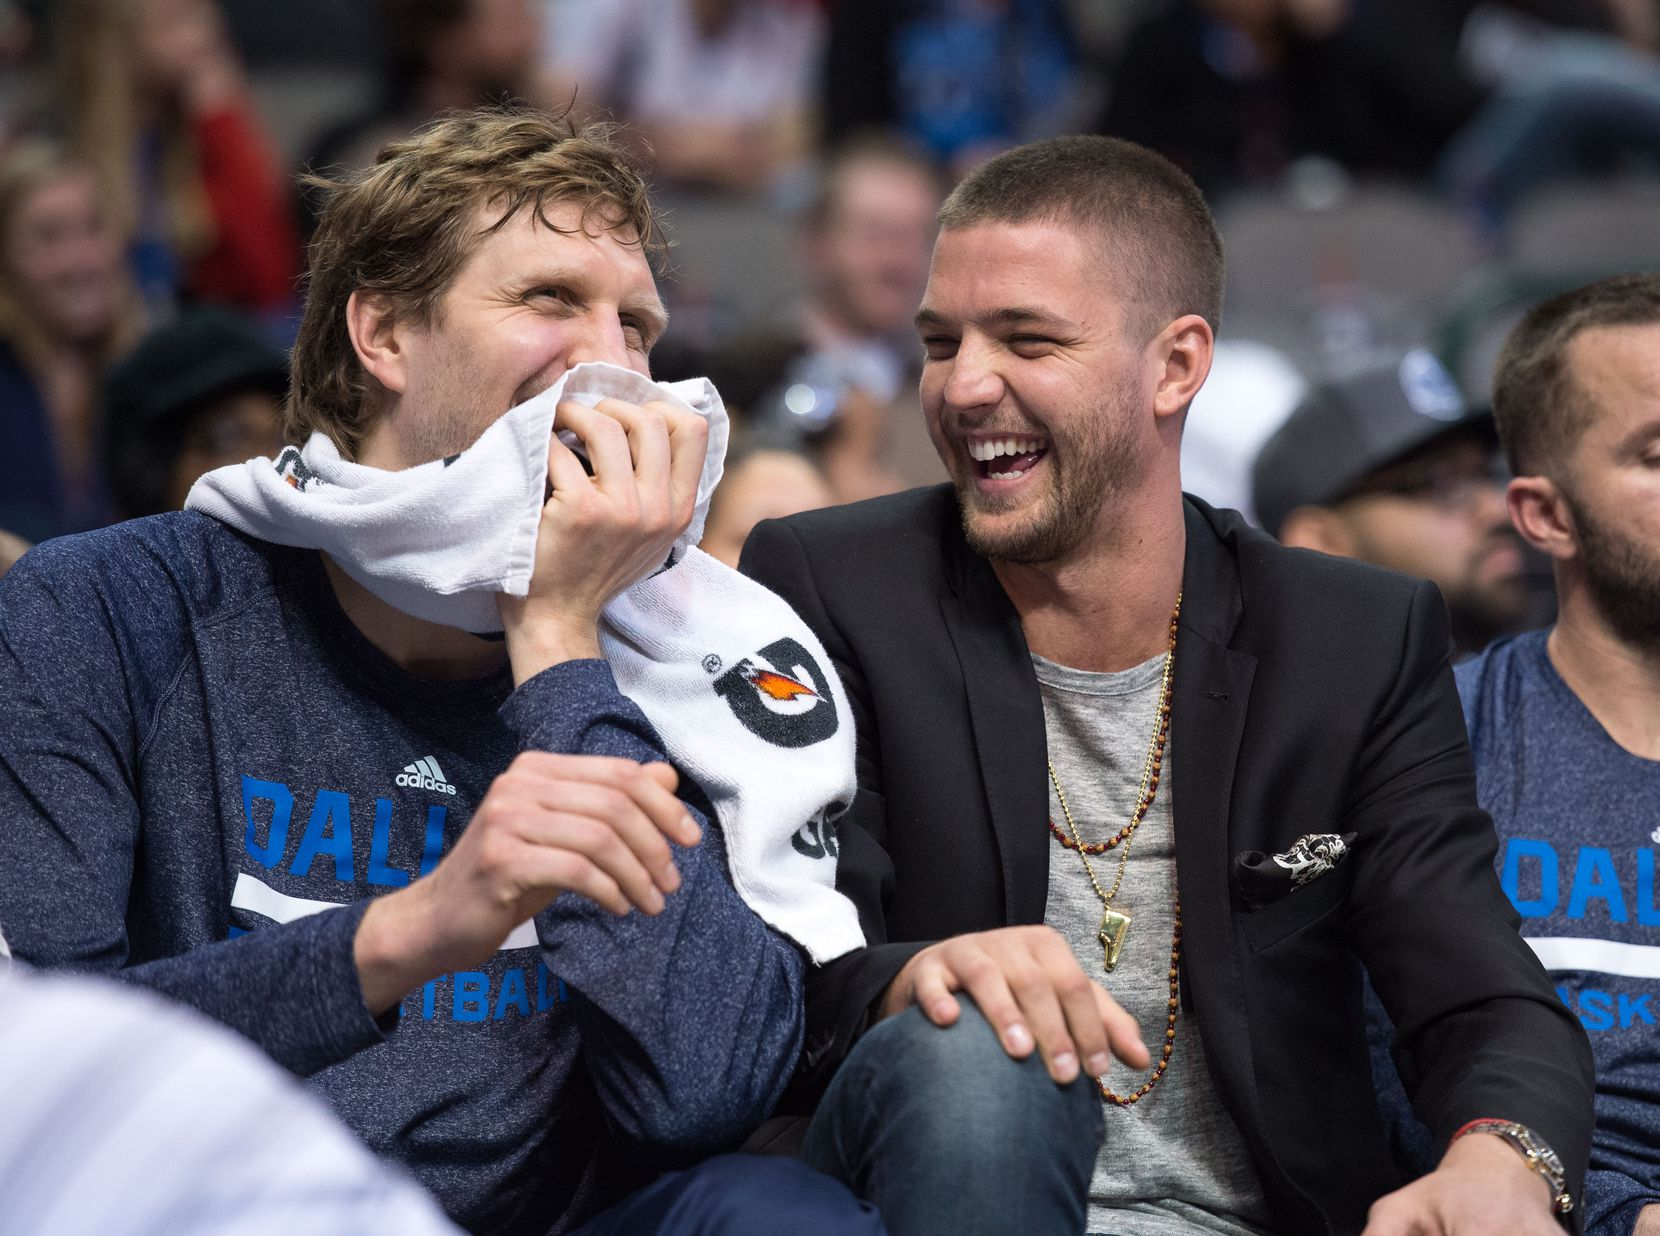 Feb 22, 2015; Dallas, TX, USA; Dallas Mavericks forward Dirk Nowitzki (41) and forward Chandler Parsons (25) share a laugh on the bench during the second half of the game between the Mavericks and the Charlotte Hornets at the American Airlines Center. The Mavericks defeated the Hornets 92-81. Mandatory Credit: Jerome Miron-USA TODAY Sports 05052015xSPORTS